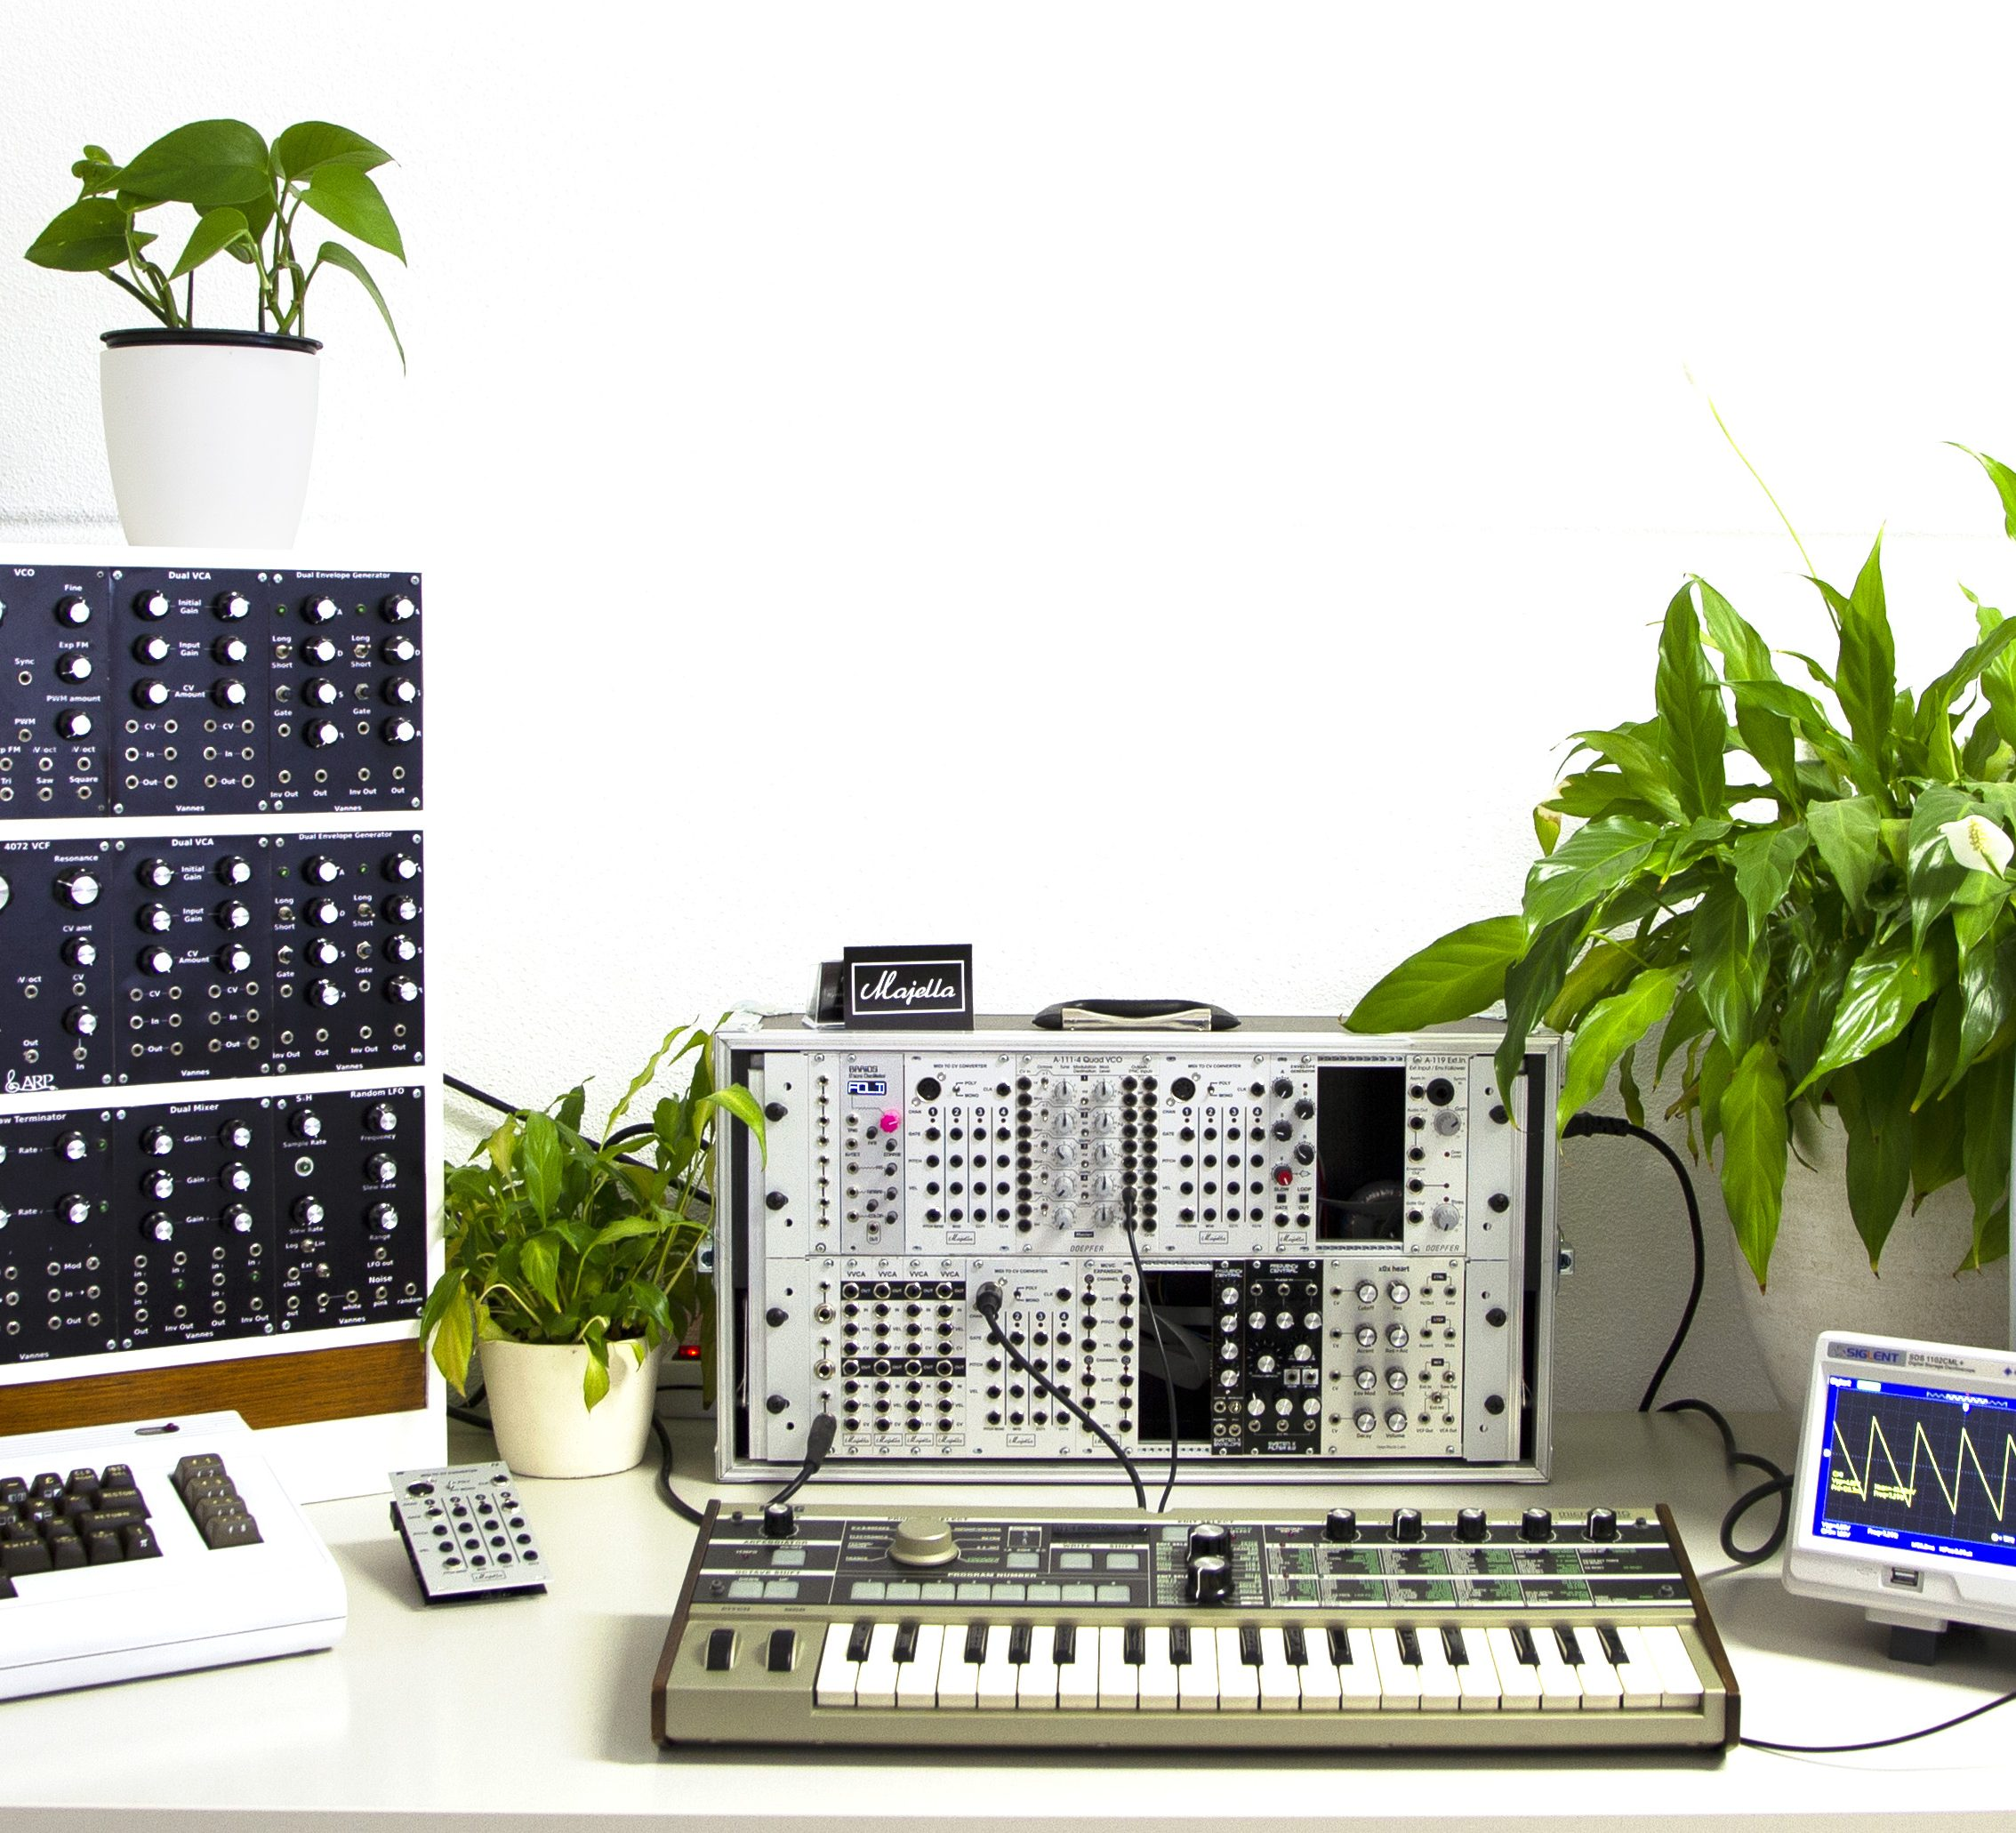 Majella Synthesizers and audio gear with plants in the studio